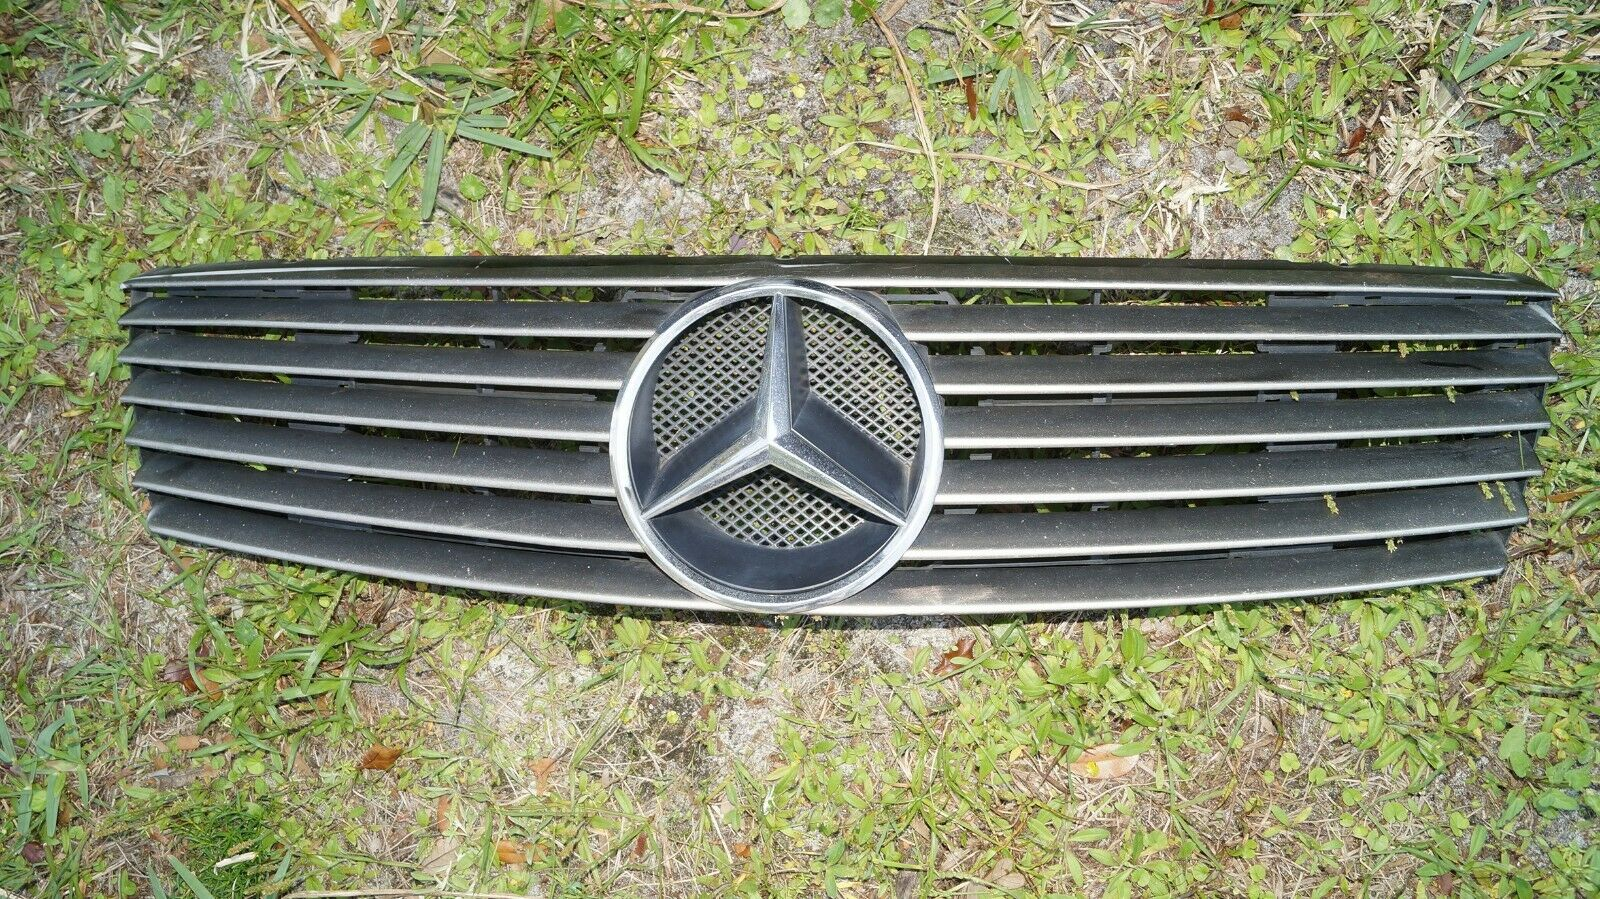 92-98 MERCEDES W140 S600 S500 CL500 CL600 GRILL GRILLE  COUPE ONLY 1408880060 140 888 00 60 C140COUPE